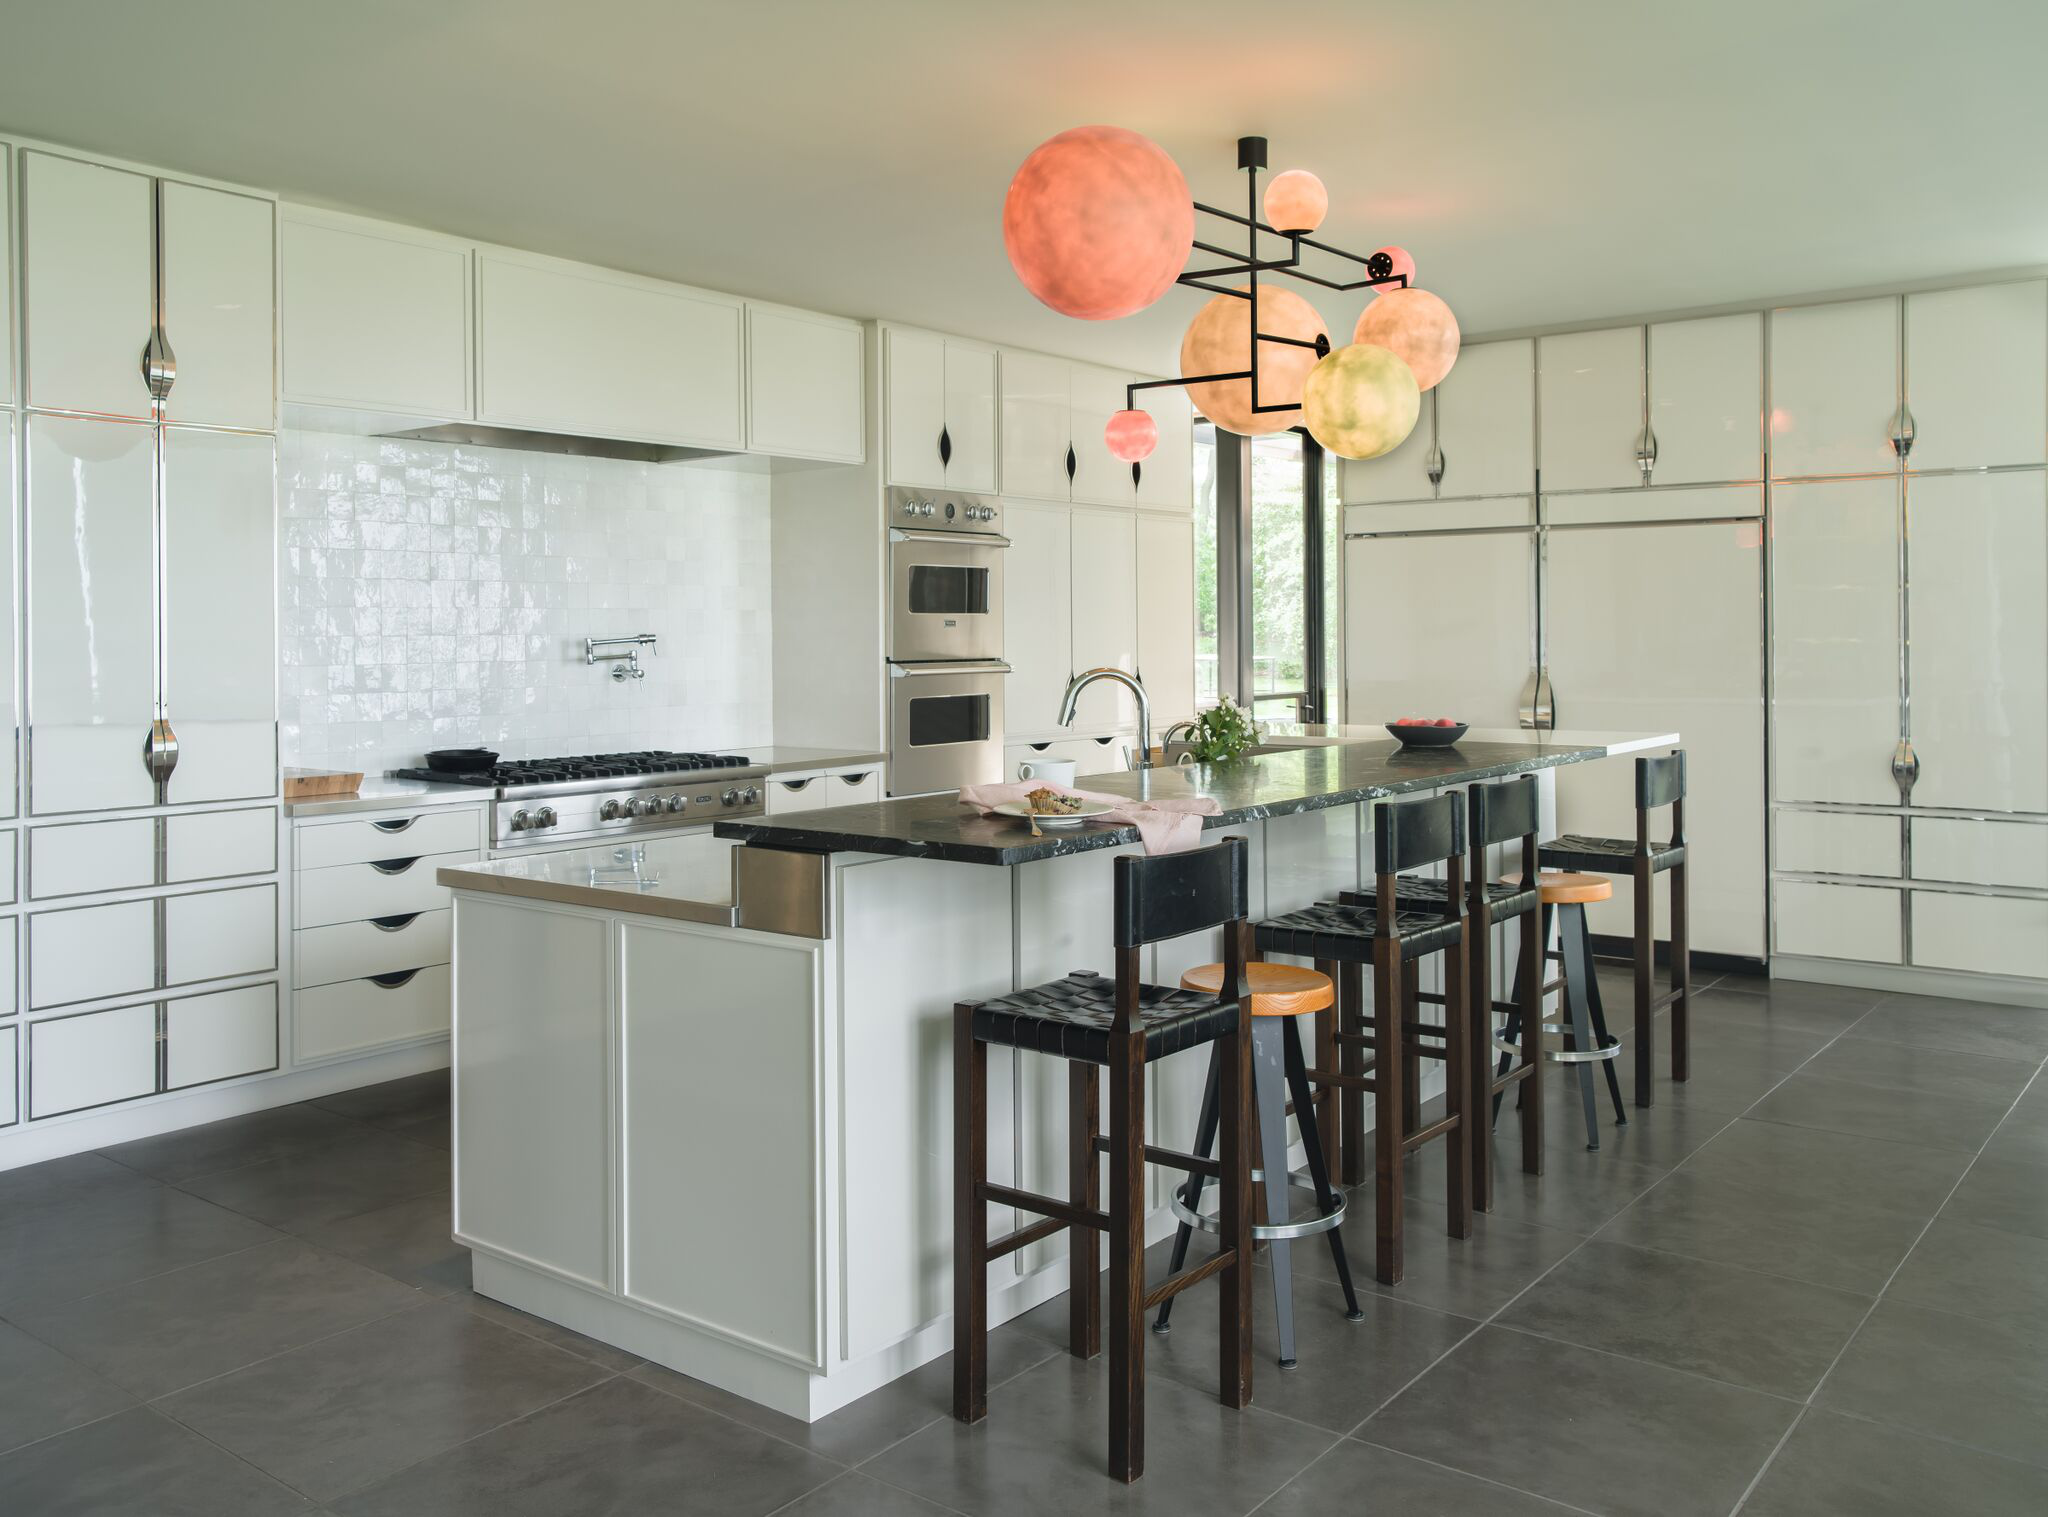 Connecticut chef's kitchen with concrete floor, handmade tiles, and custom hardware by Fine Concepts